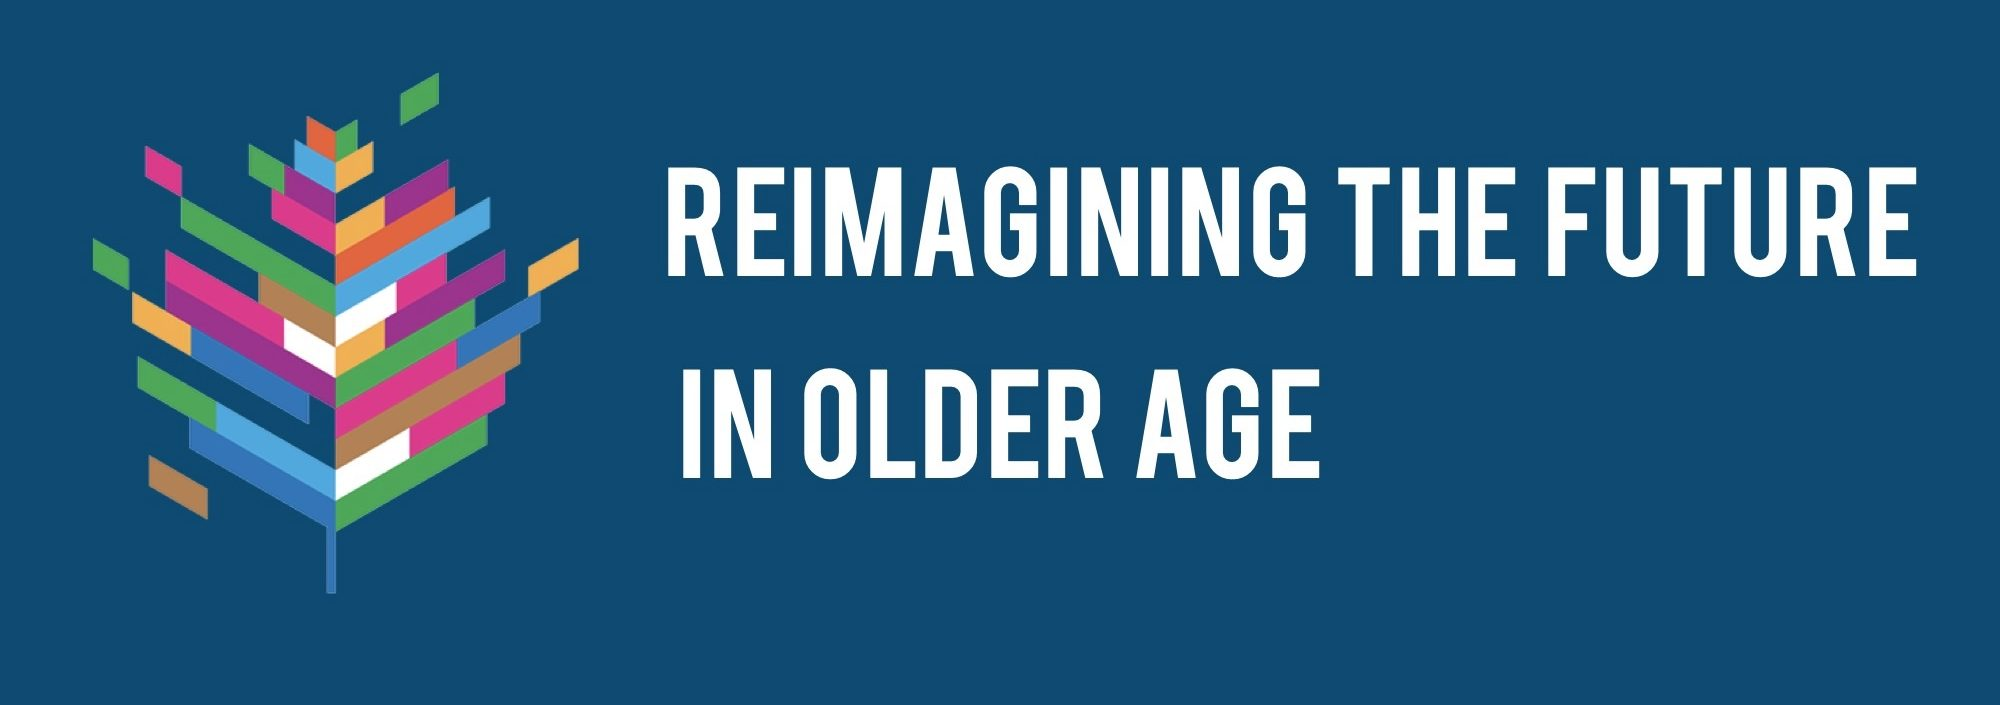 Reimagining the Future in Older Age